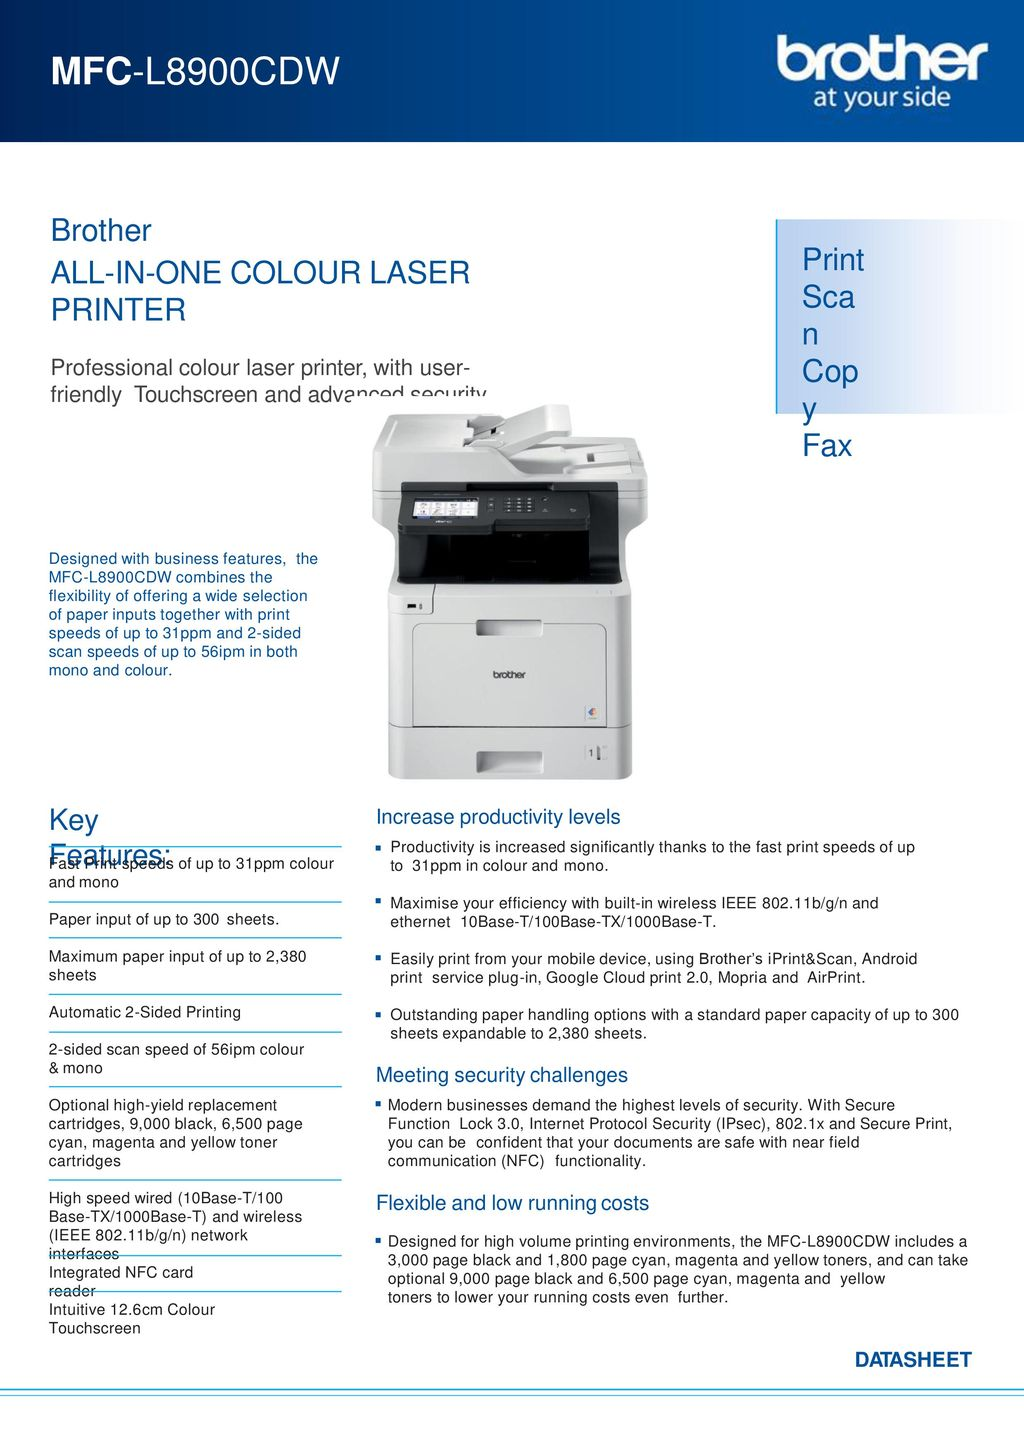 MFC-L8900CDW Brother ALL-IN-ONE COLOUR LASER PRINTER - ppt download